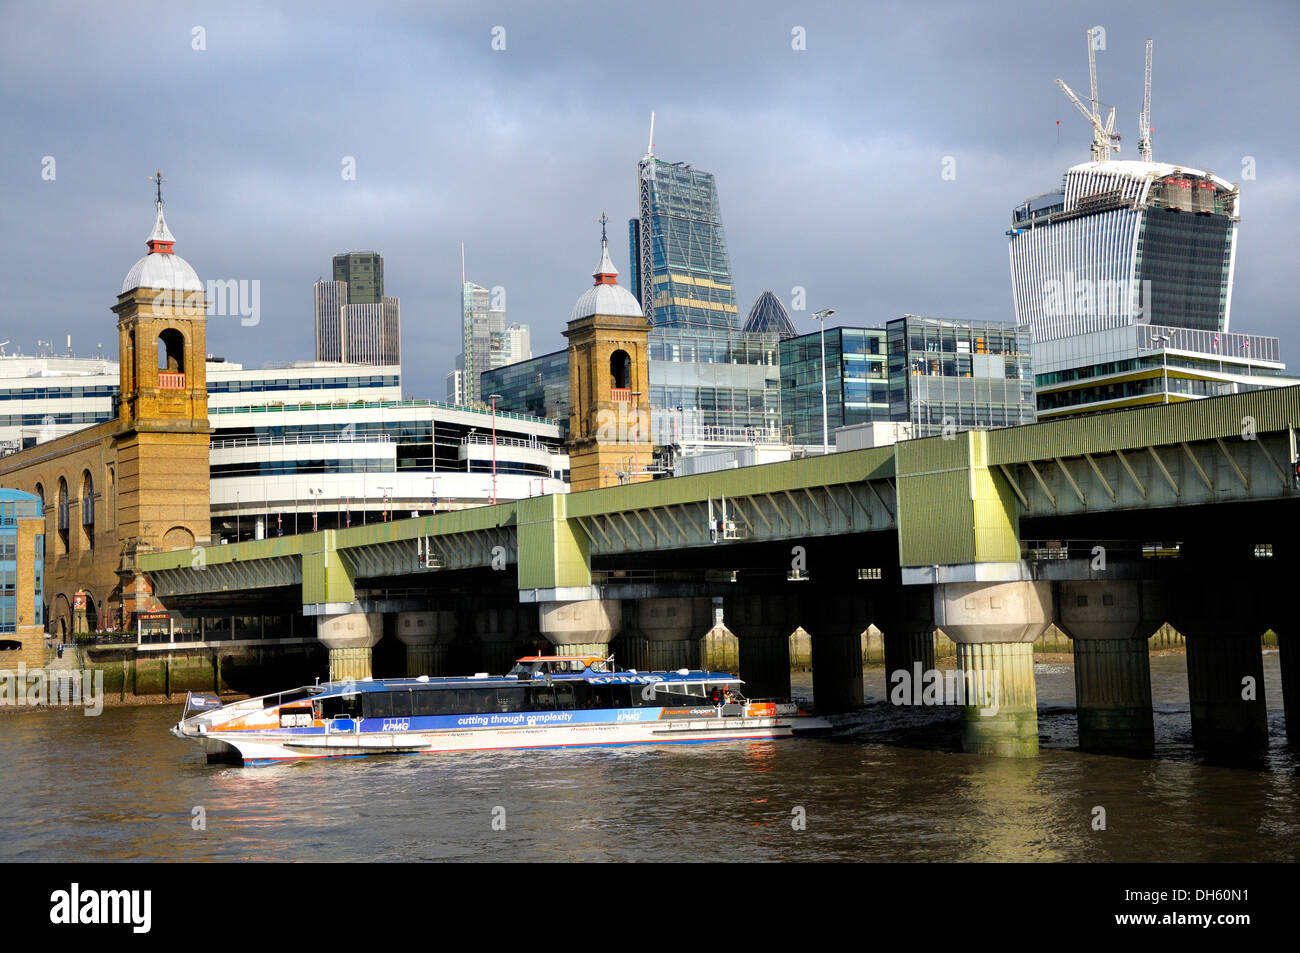 London, England, UK. Cannon Street Station Bridge and the city, seen from the South Bank. 'Thames Clipper' water Stock Photo